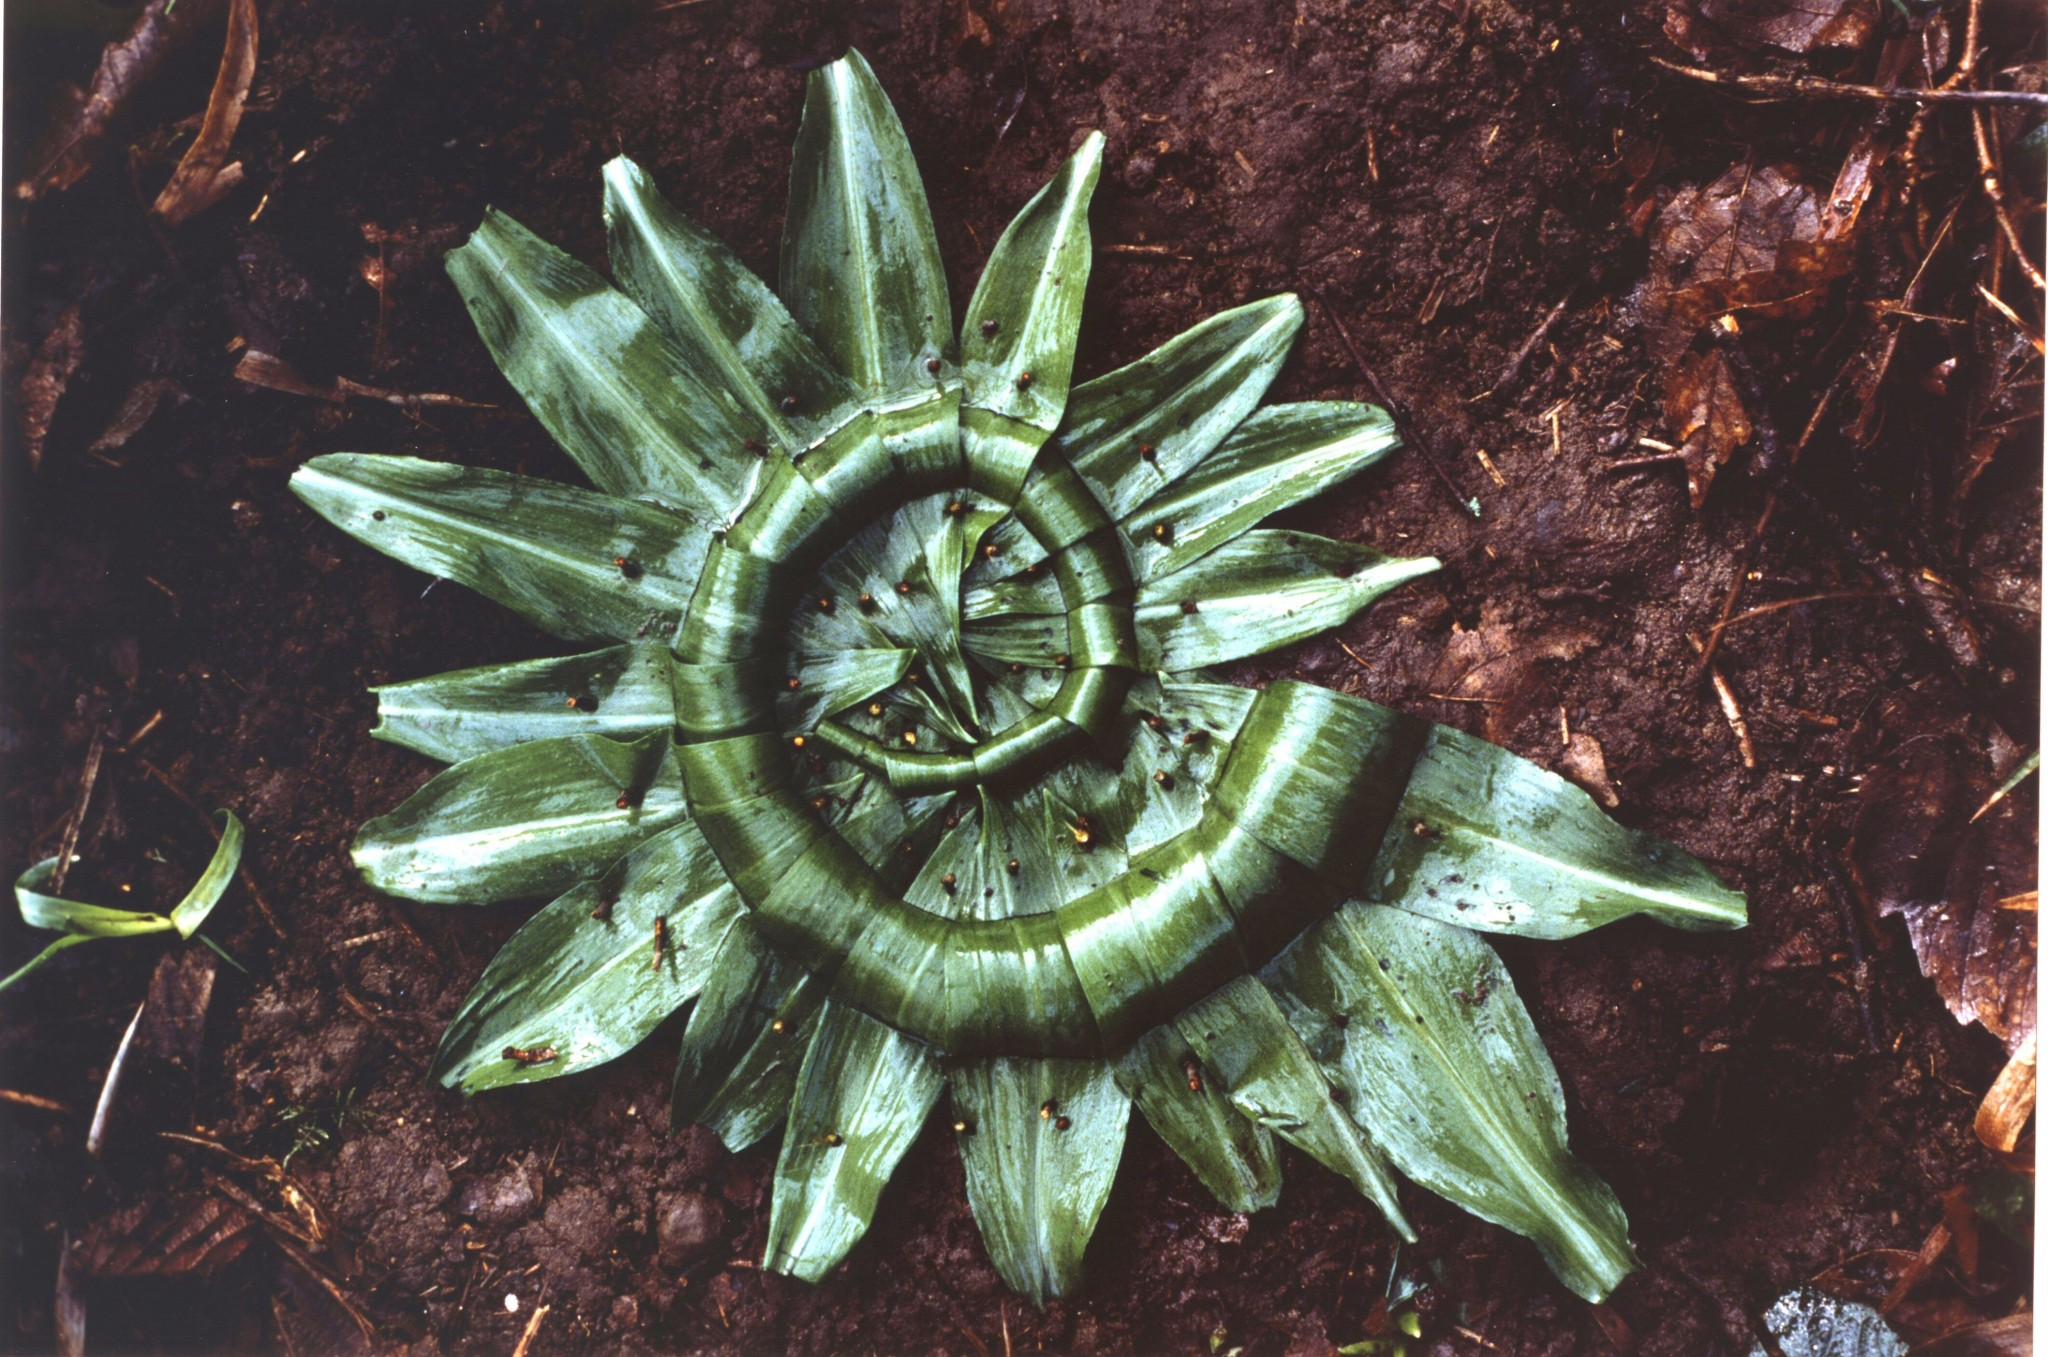 Andy_593-Goldsworthy-A-Garlic-Leaves-creased-and-folded-Scaur-Glen-Dumfriesshire.jpg